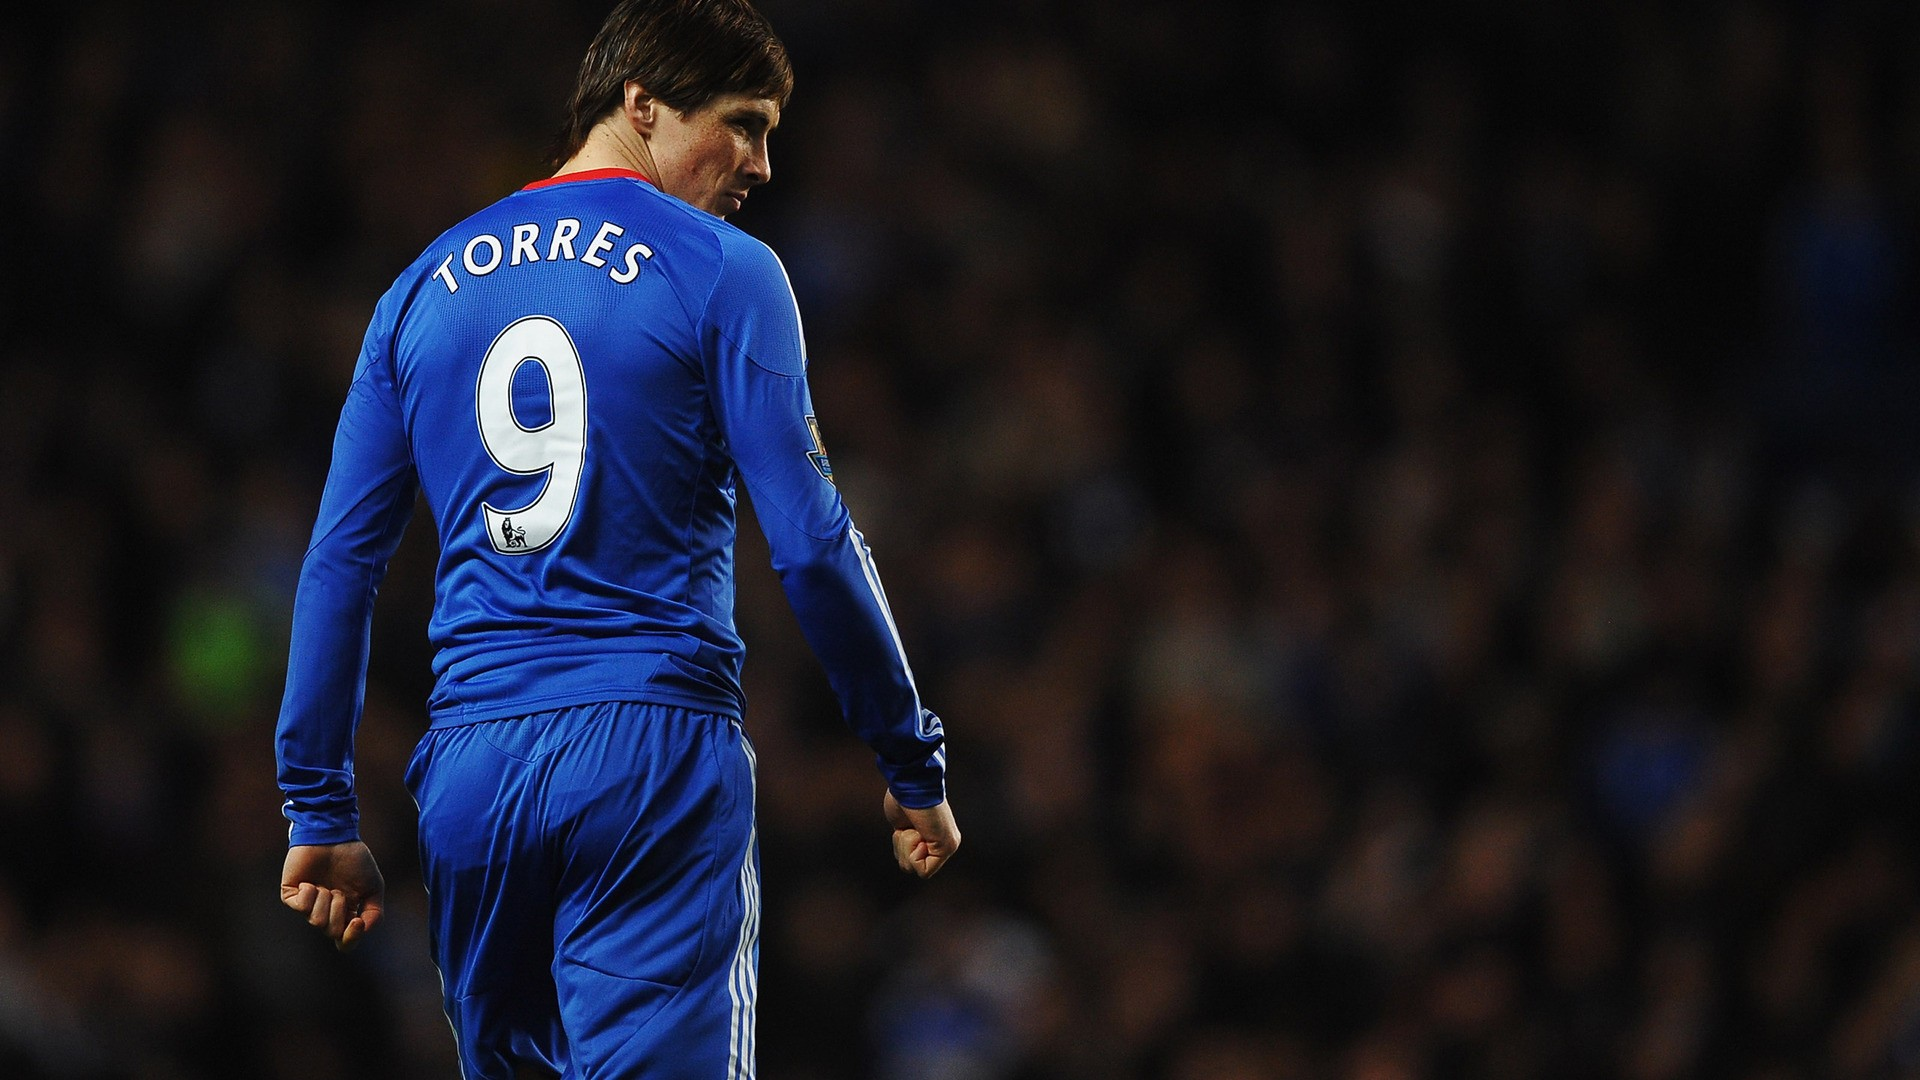 Torres Football Players HD Wallpaper Fernando Torres Football Players 1920x1080